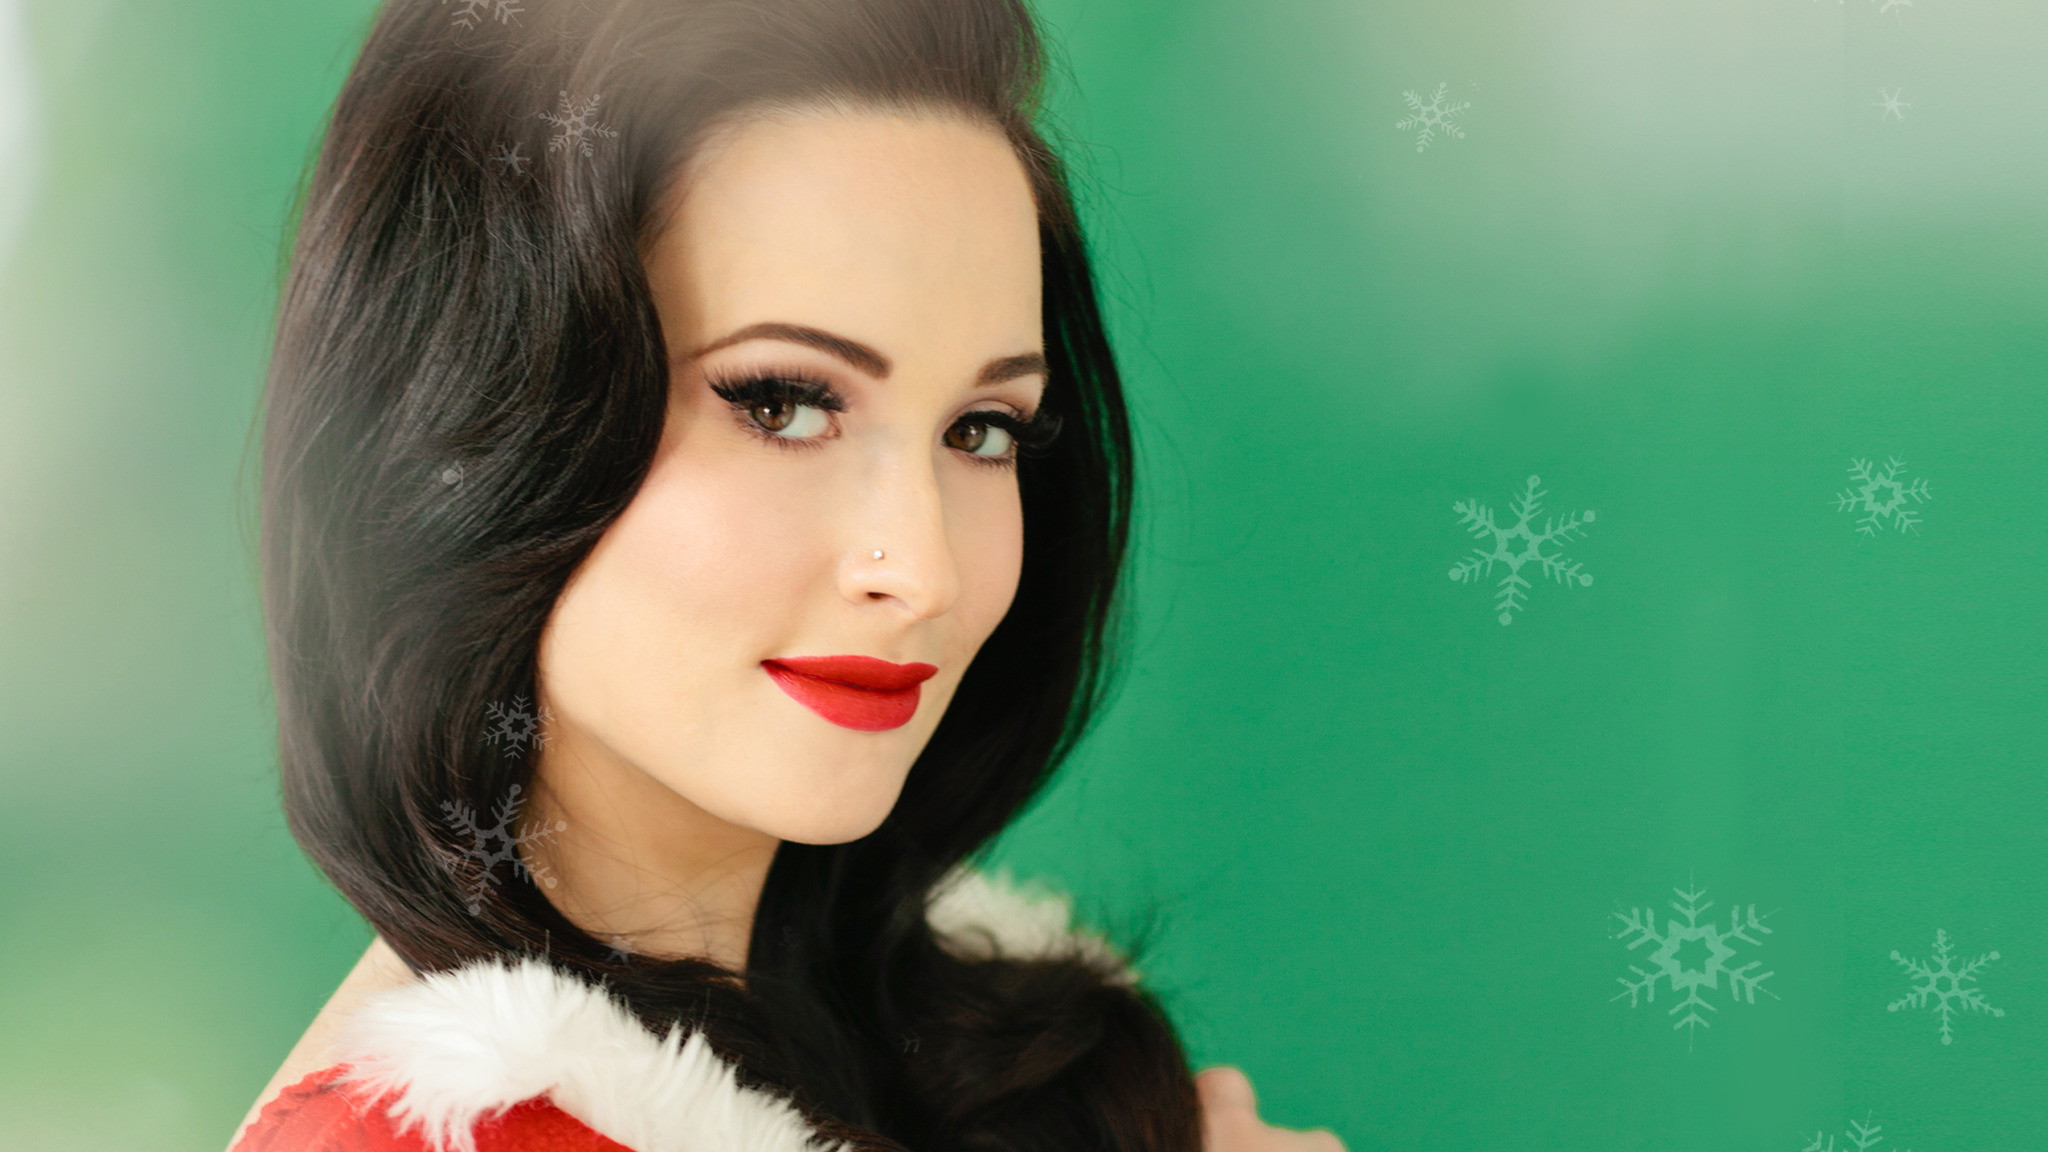 Plaat van de week: Kacey Musgraves – What Are You Doing New Year's Eve?